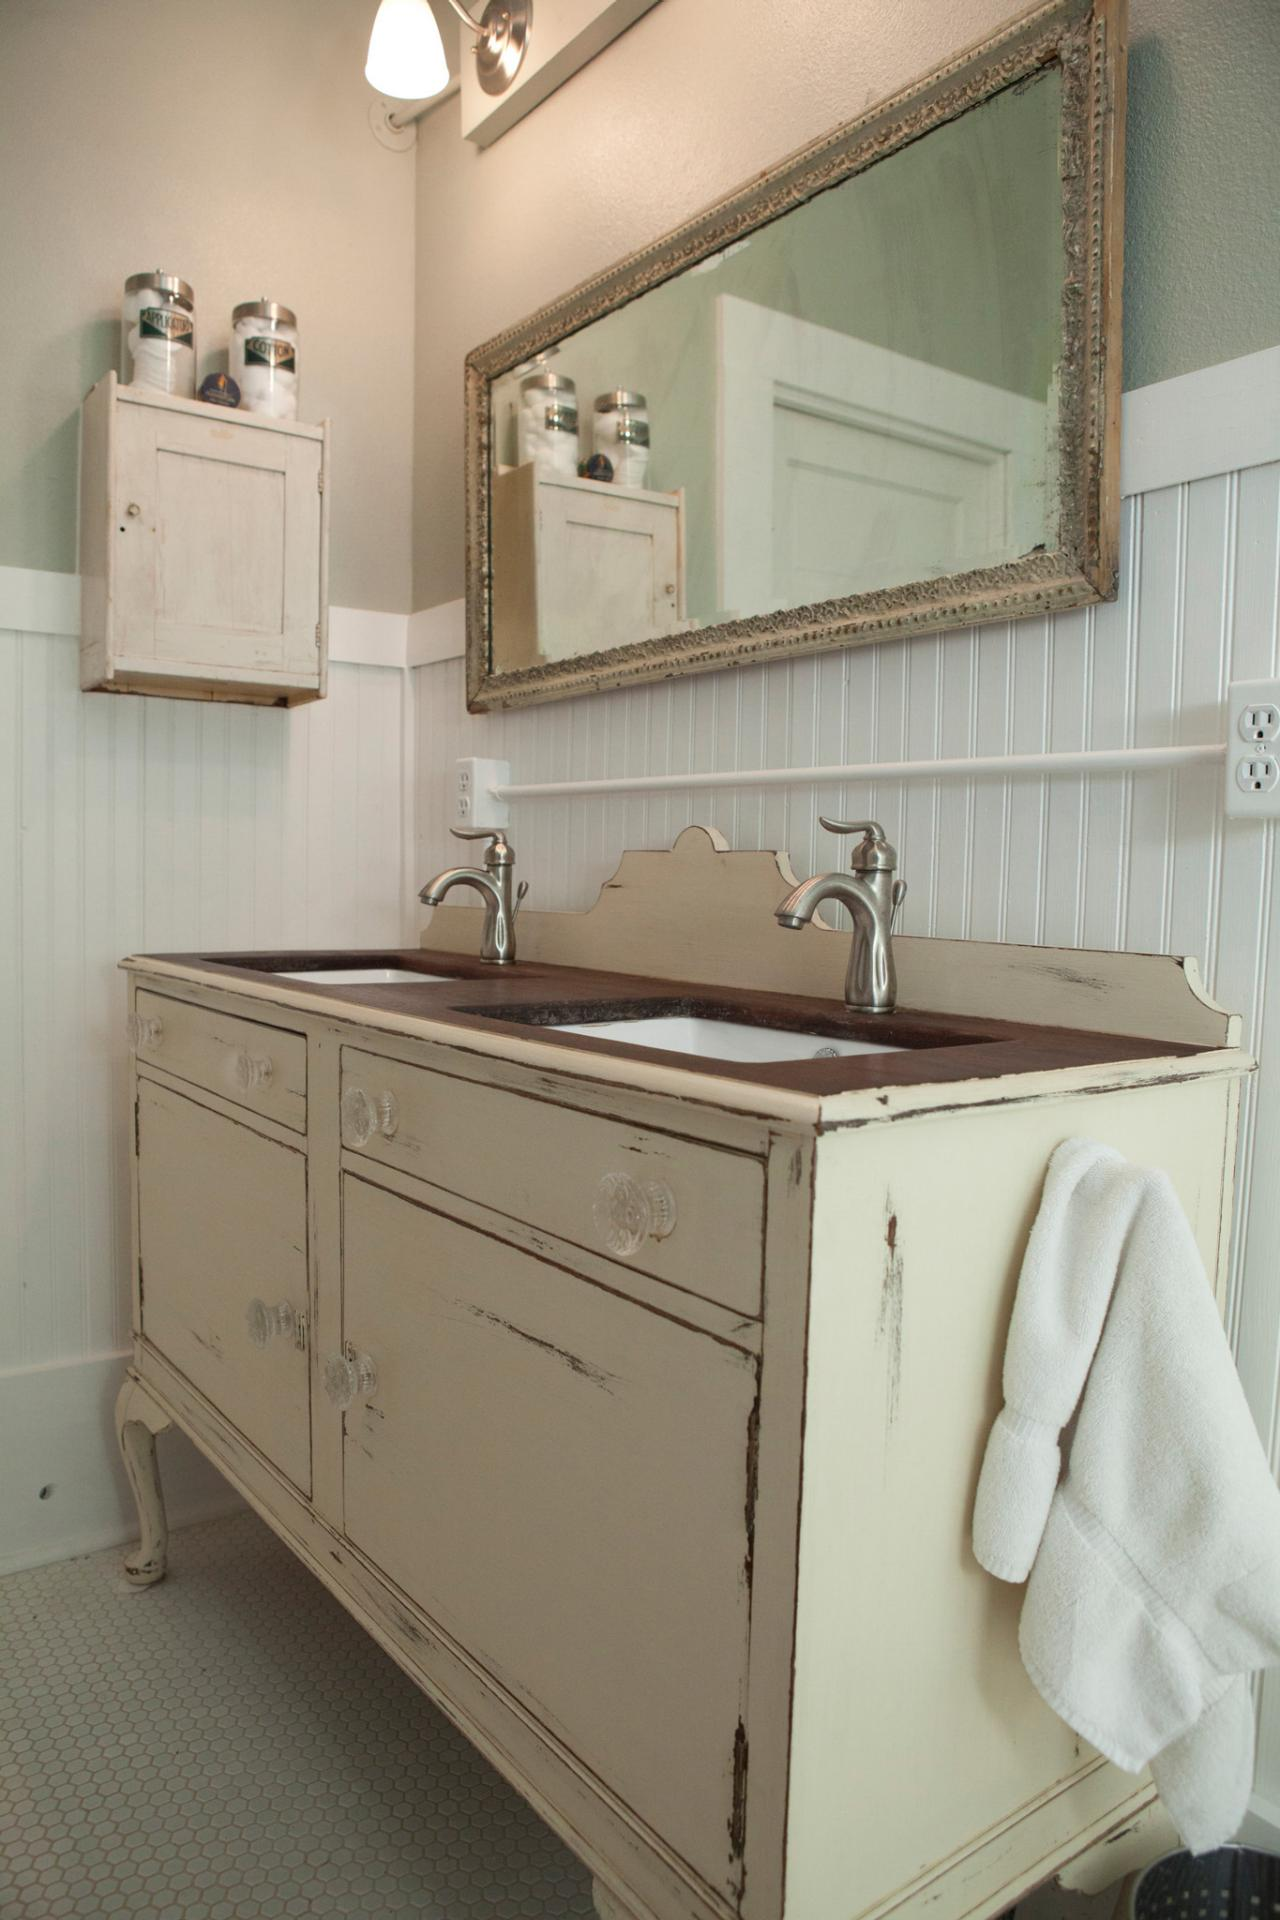 3 Vintage Furniture Makeovers for the Bathroom | DIY ...